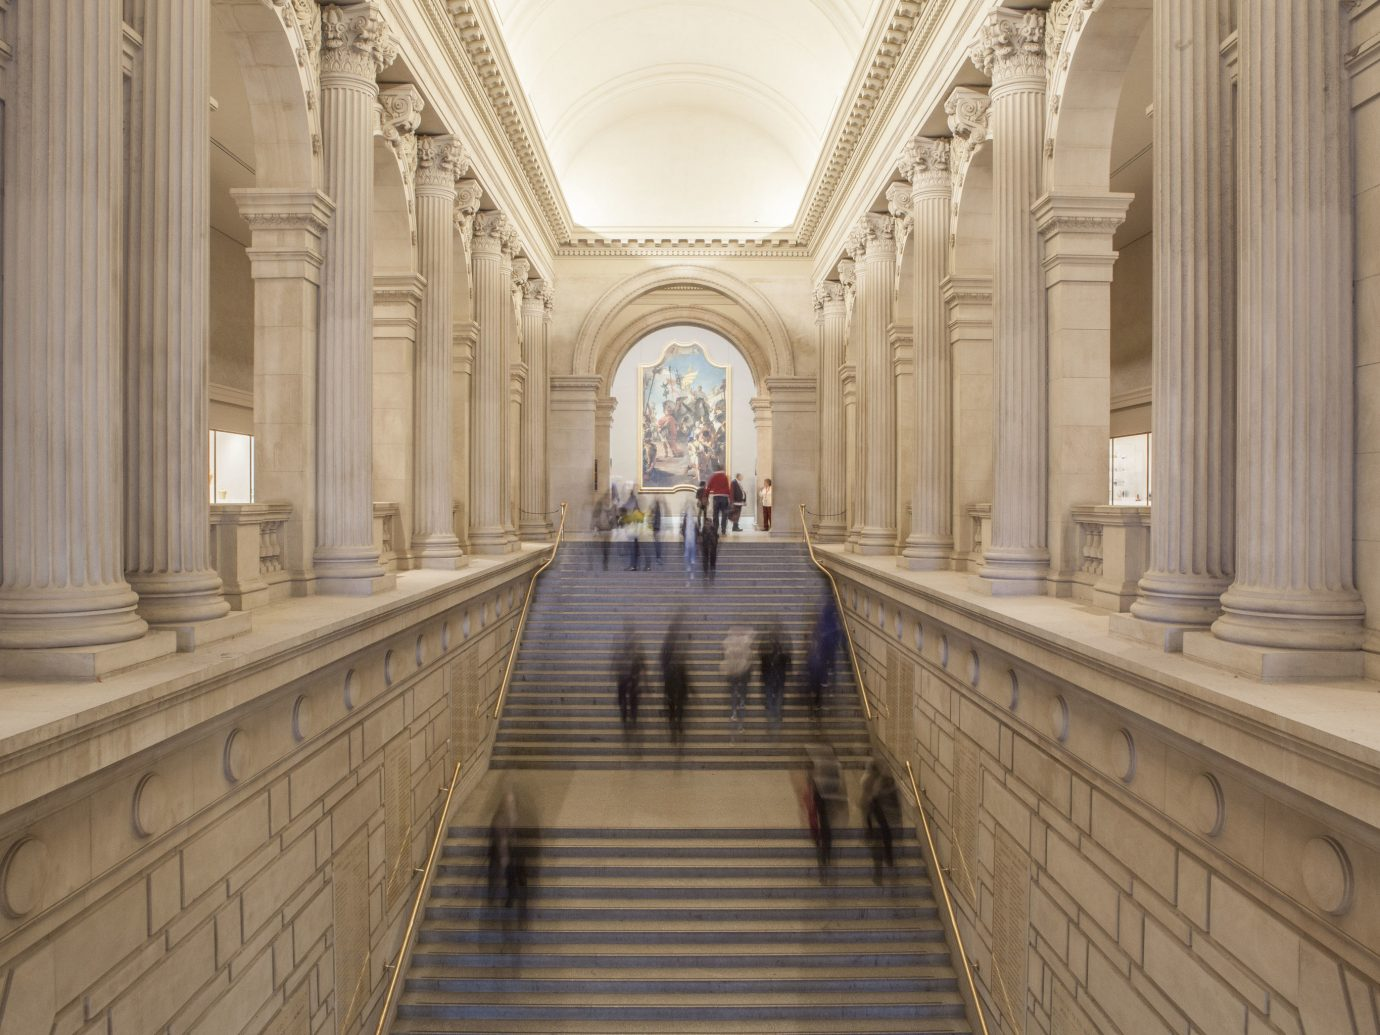 Hotels Jetsetter Guides Travel Tips Trip Ideas building aisle Architecture place of worship column cathedral Church palace symmetry estate chapel basilica hall arch stone walkway colonnade